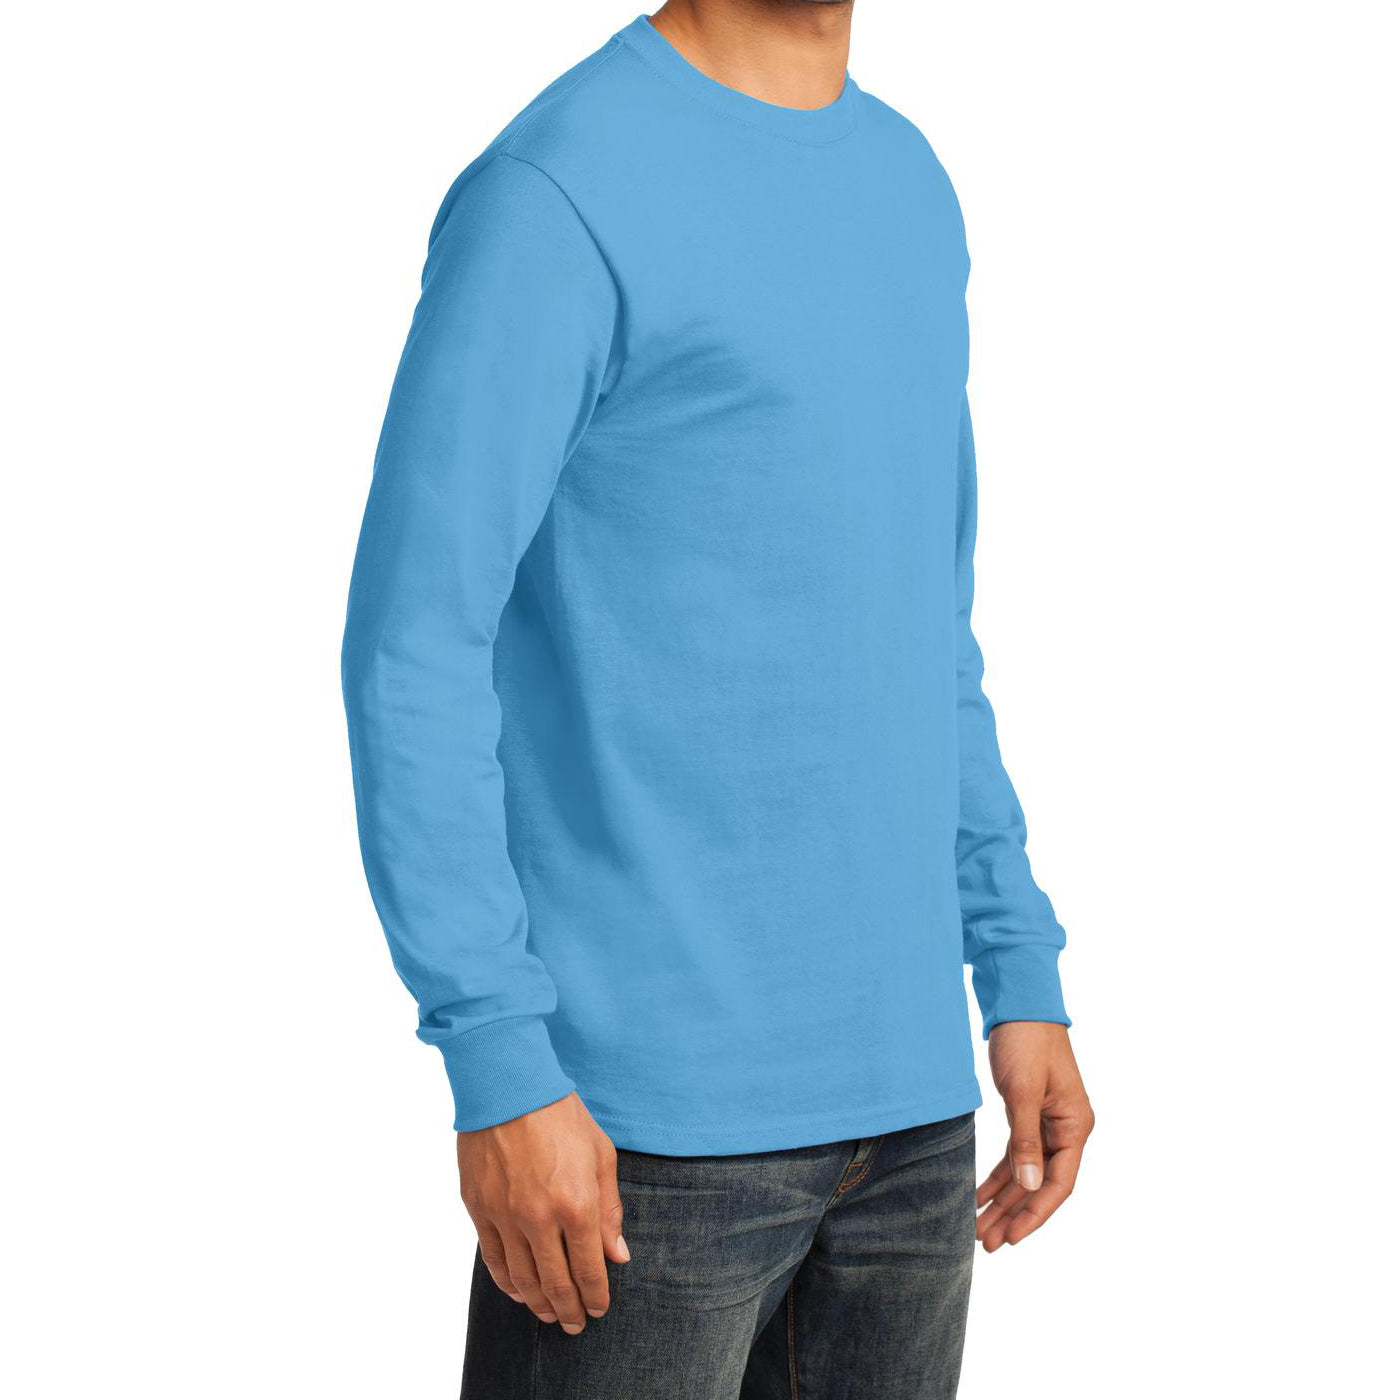 Men's Long Sleeve Essential Tee - Aquatic Blue - Side